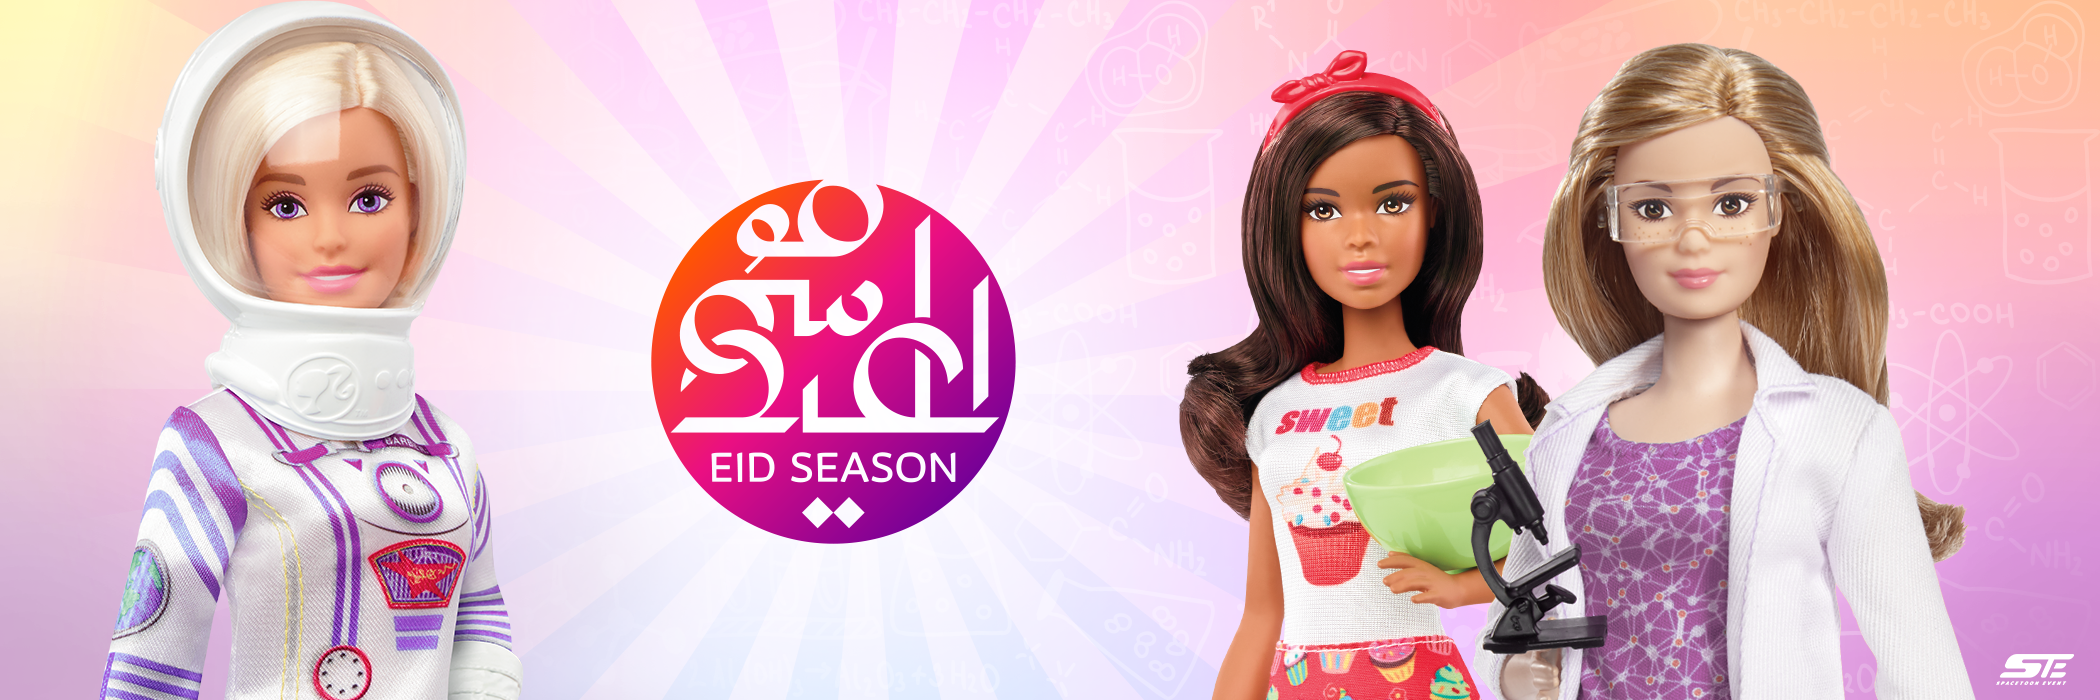 Slider 2 -  Eid season.png